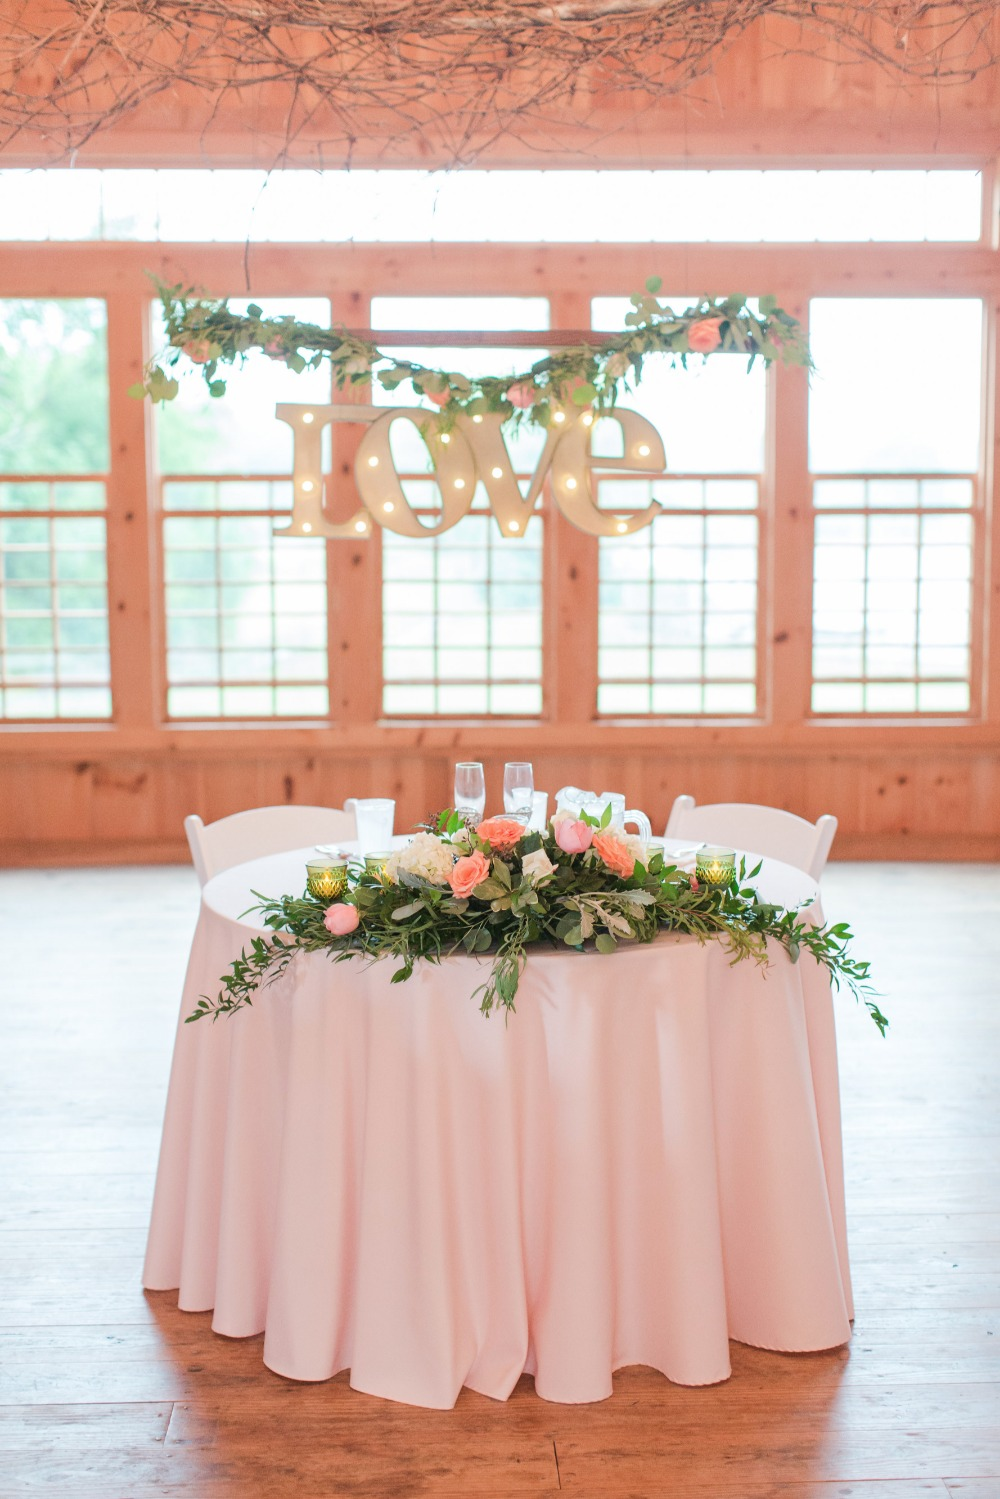 Cute sweetheart table